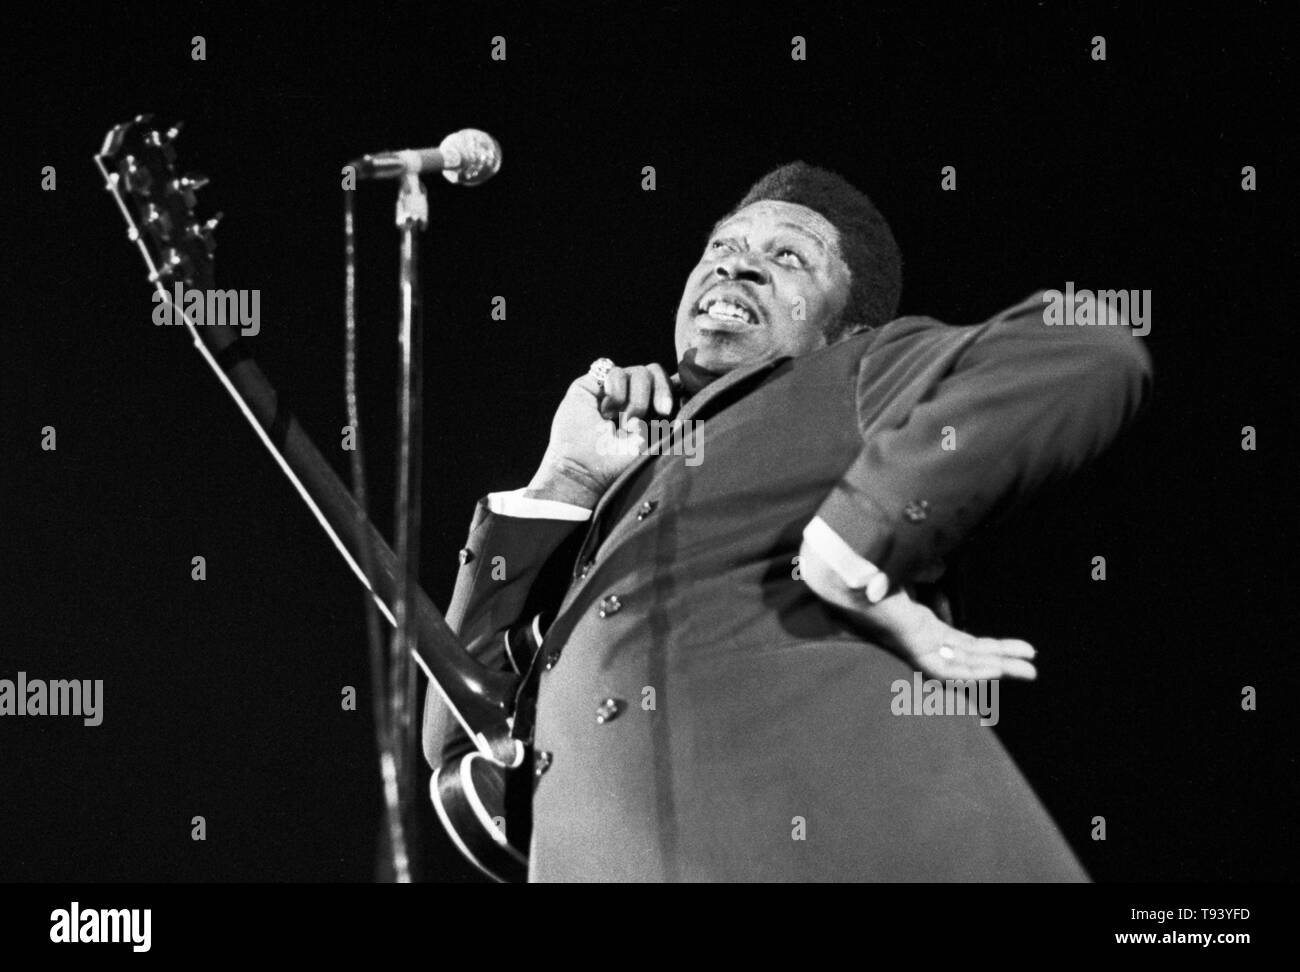 Amsterdam, Netherlands - 1st JANUARY: American Blues guitarist and singer B.B. King performs live at the Concertgebouw in Amsterdam, Netherlands in 1972. (Photo by Gijsbert Hanekroot) - Stock Image